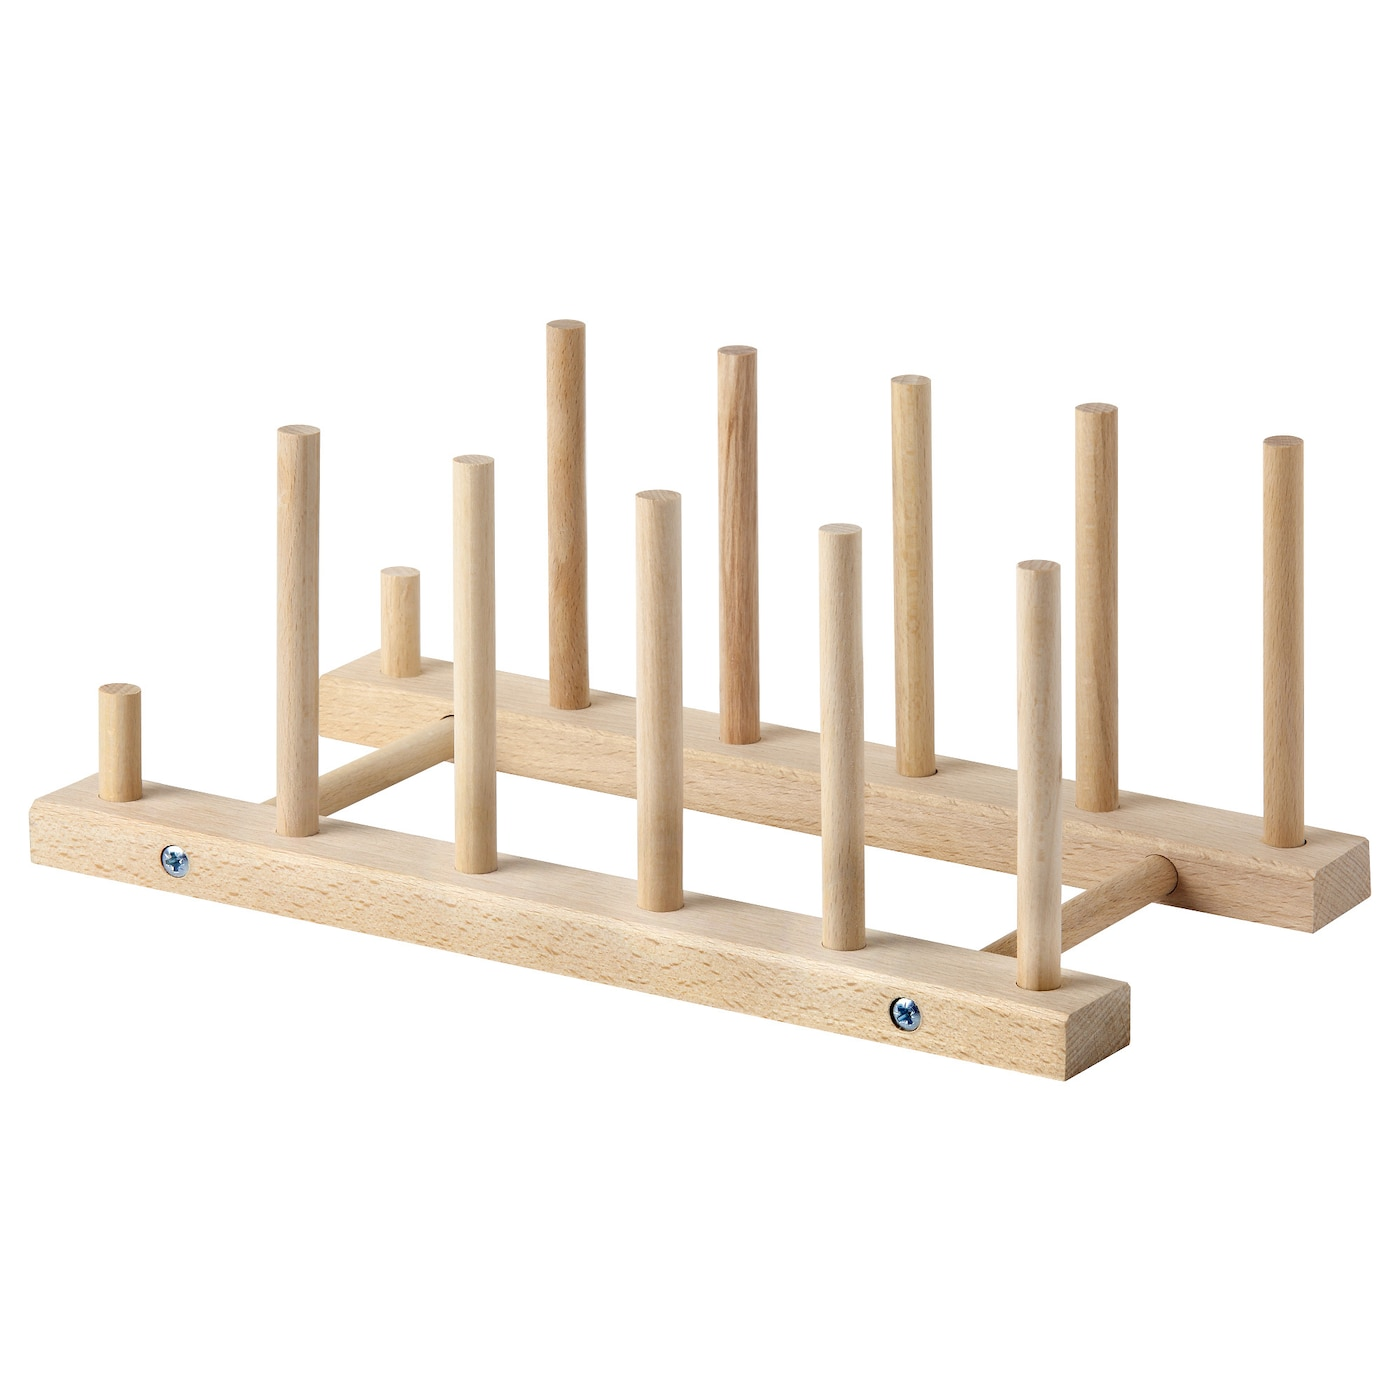 IKEA NYPLOCKAD plate holder